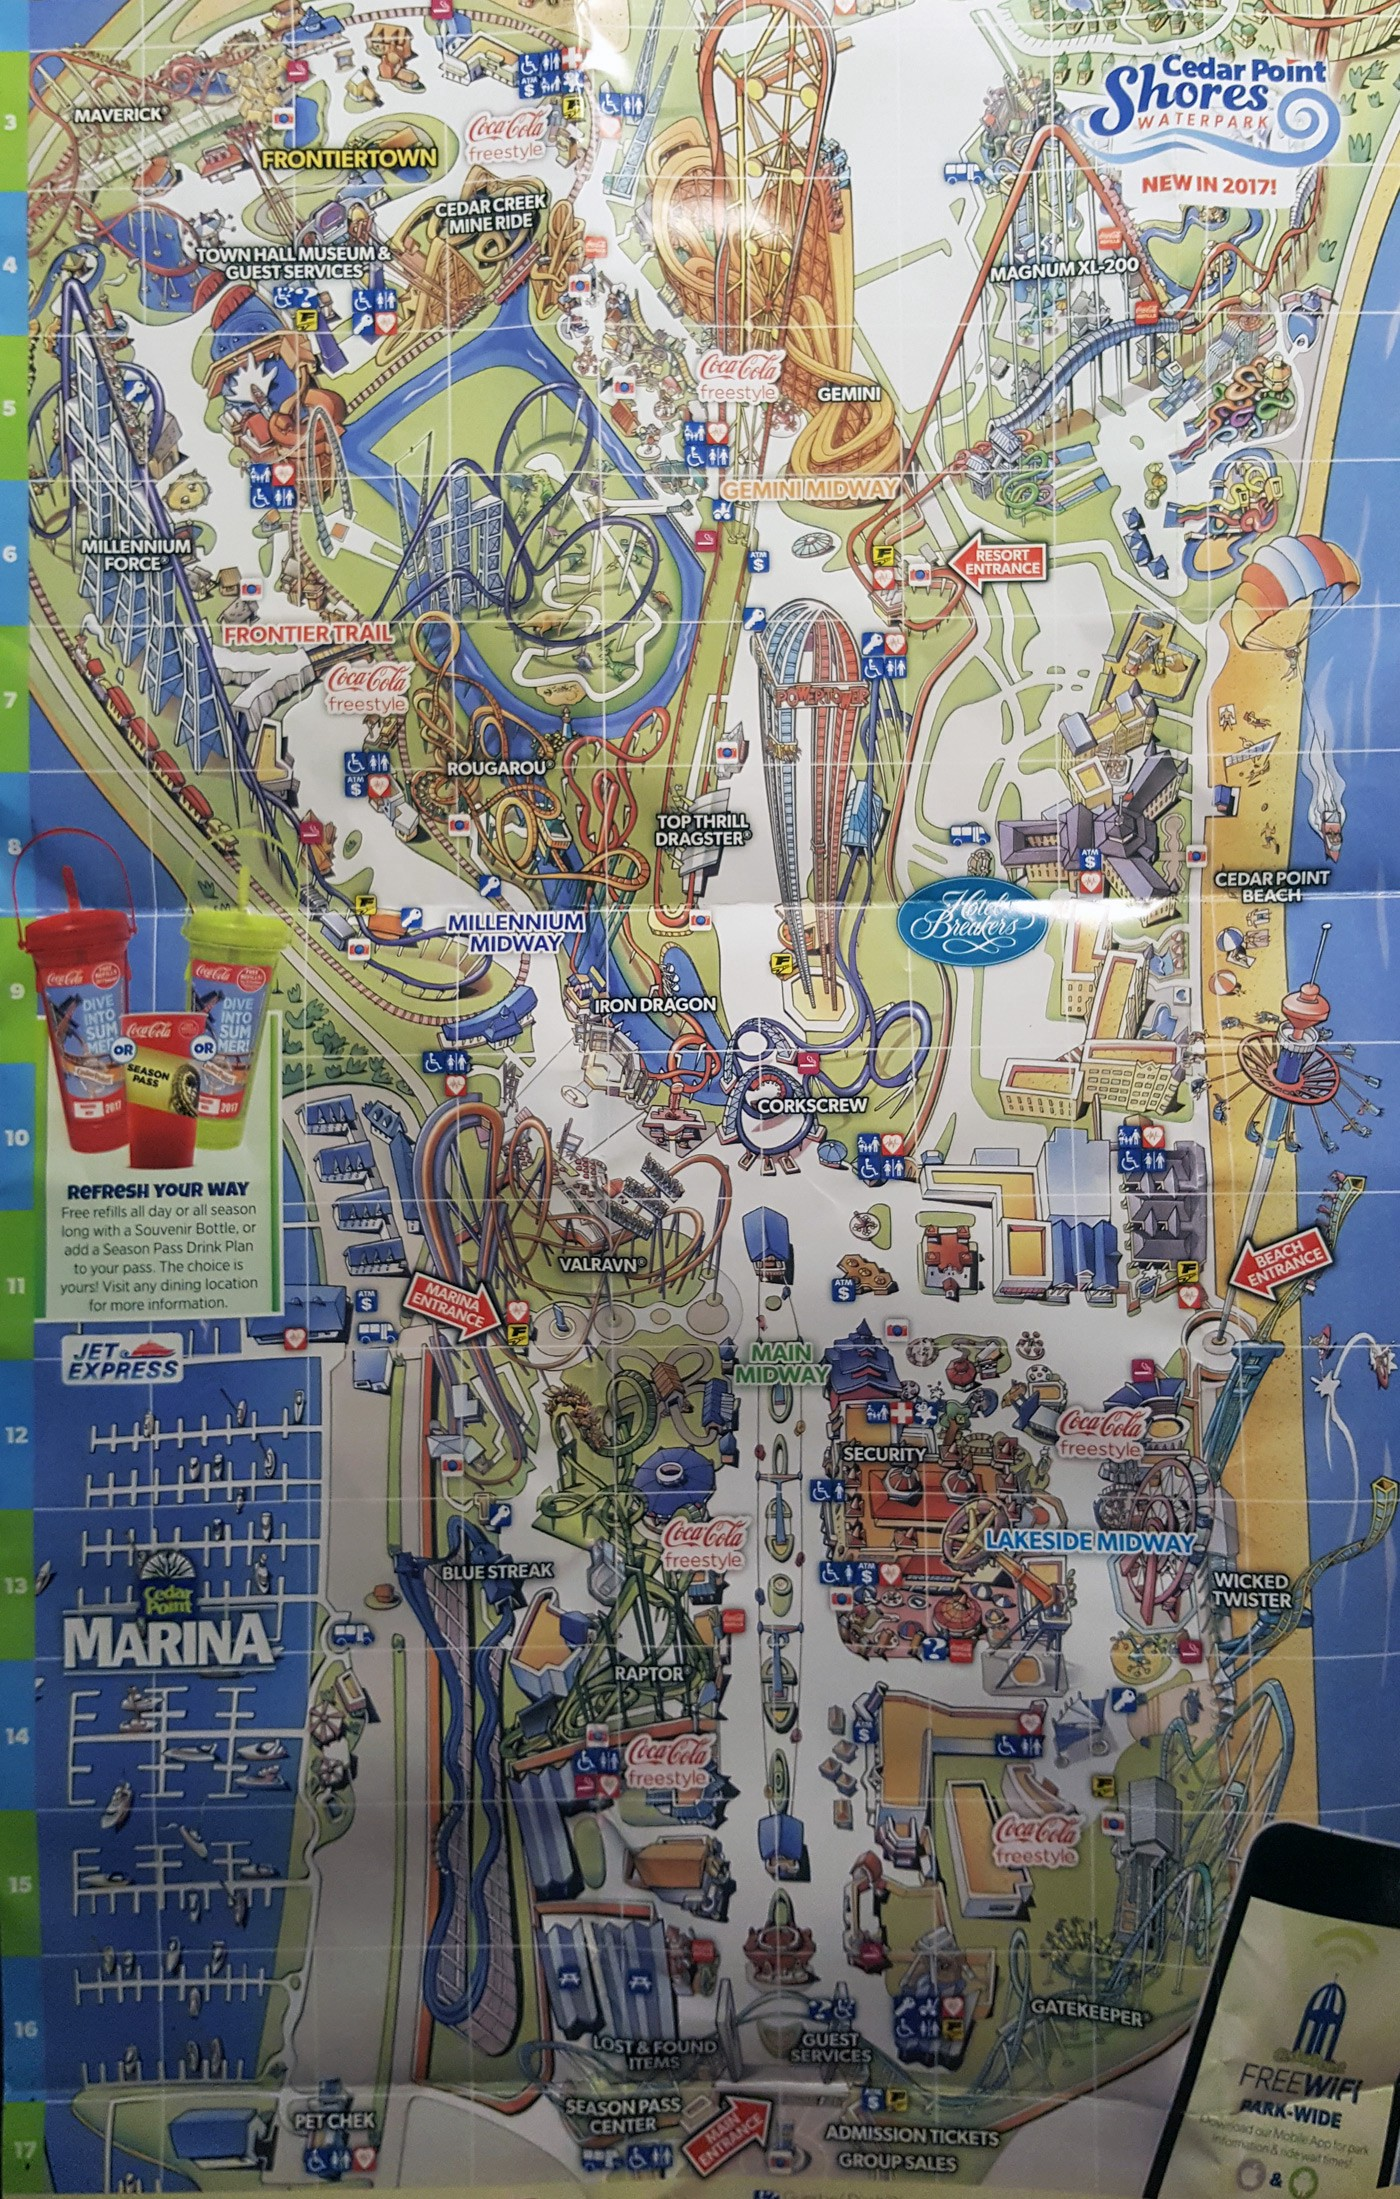 Lesson From A Cedar Point Park Map Lessons From Ordinary Medium